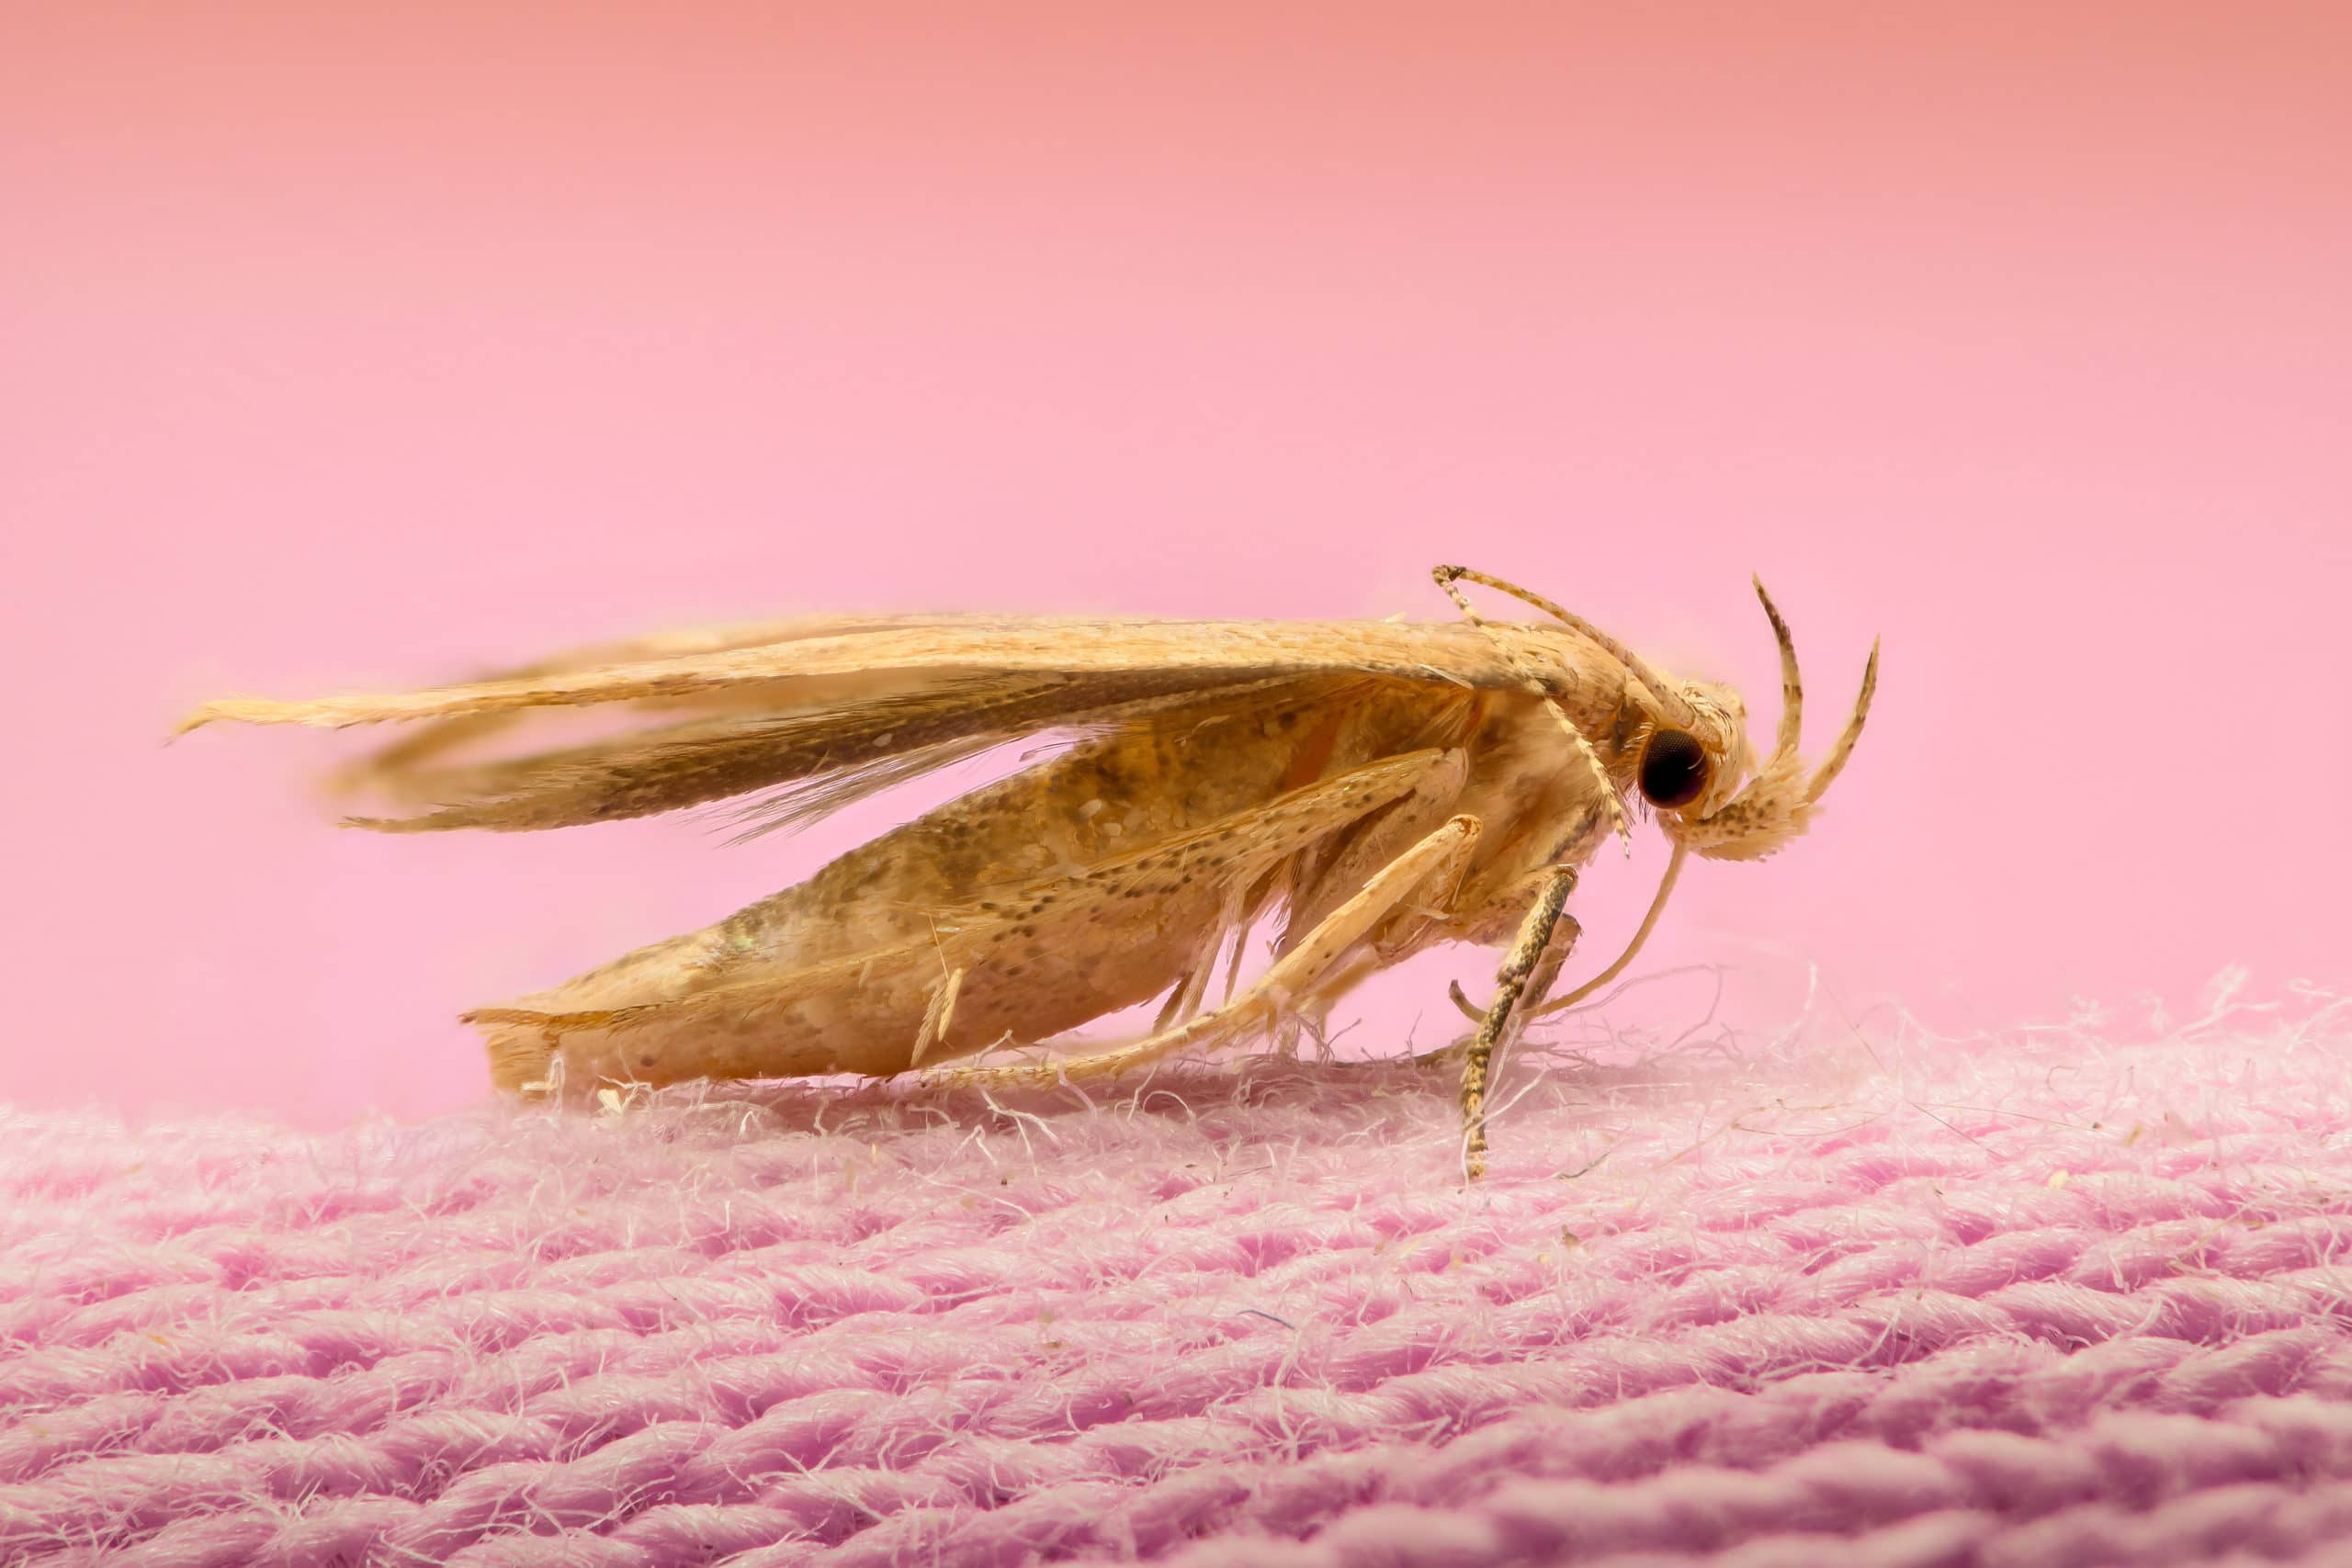 a moth on a pink, knit piece of clothing